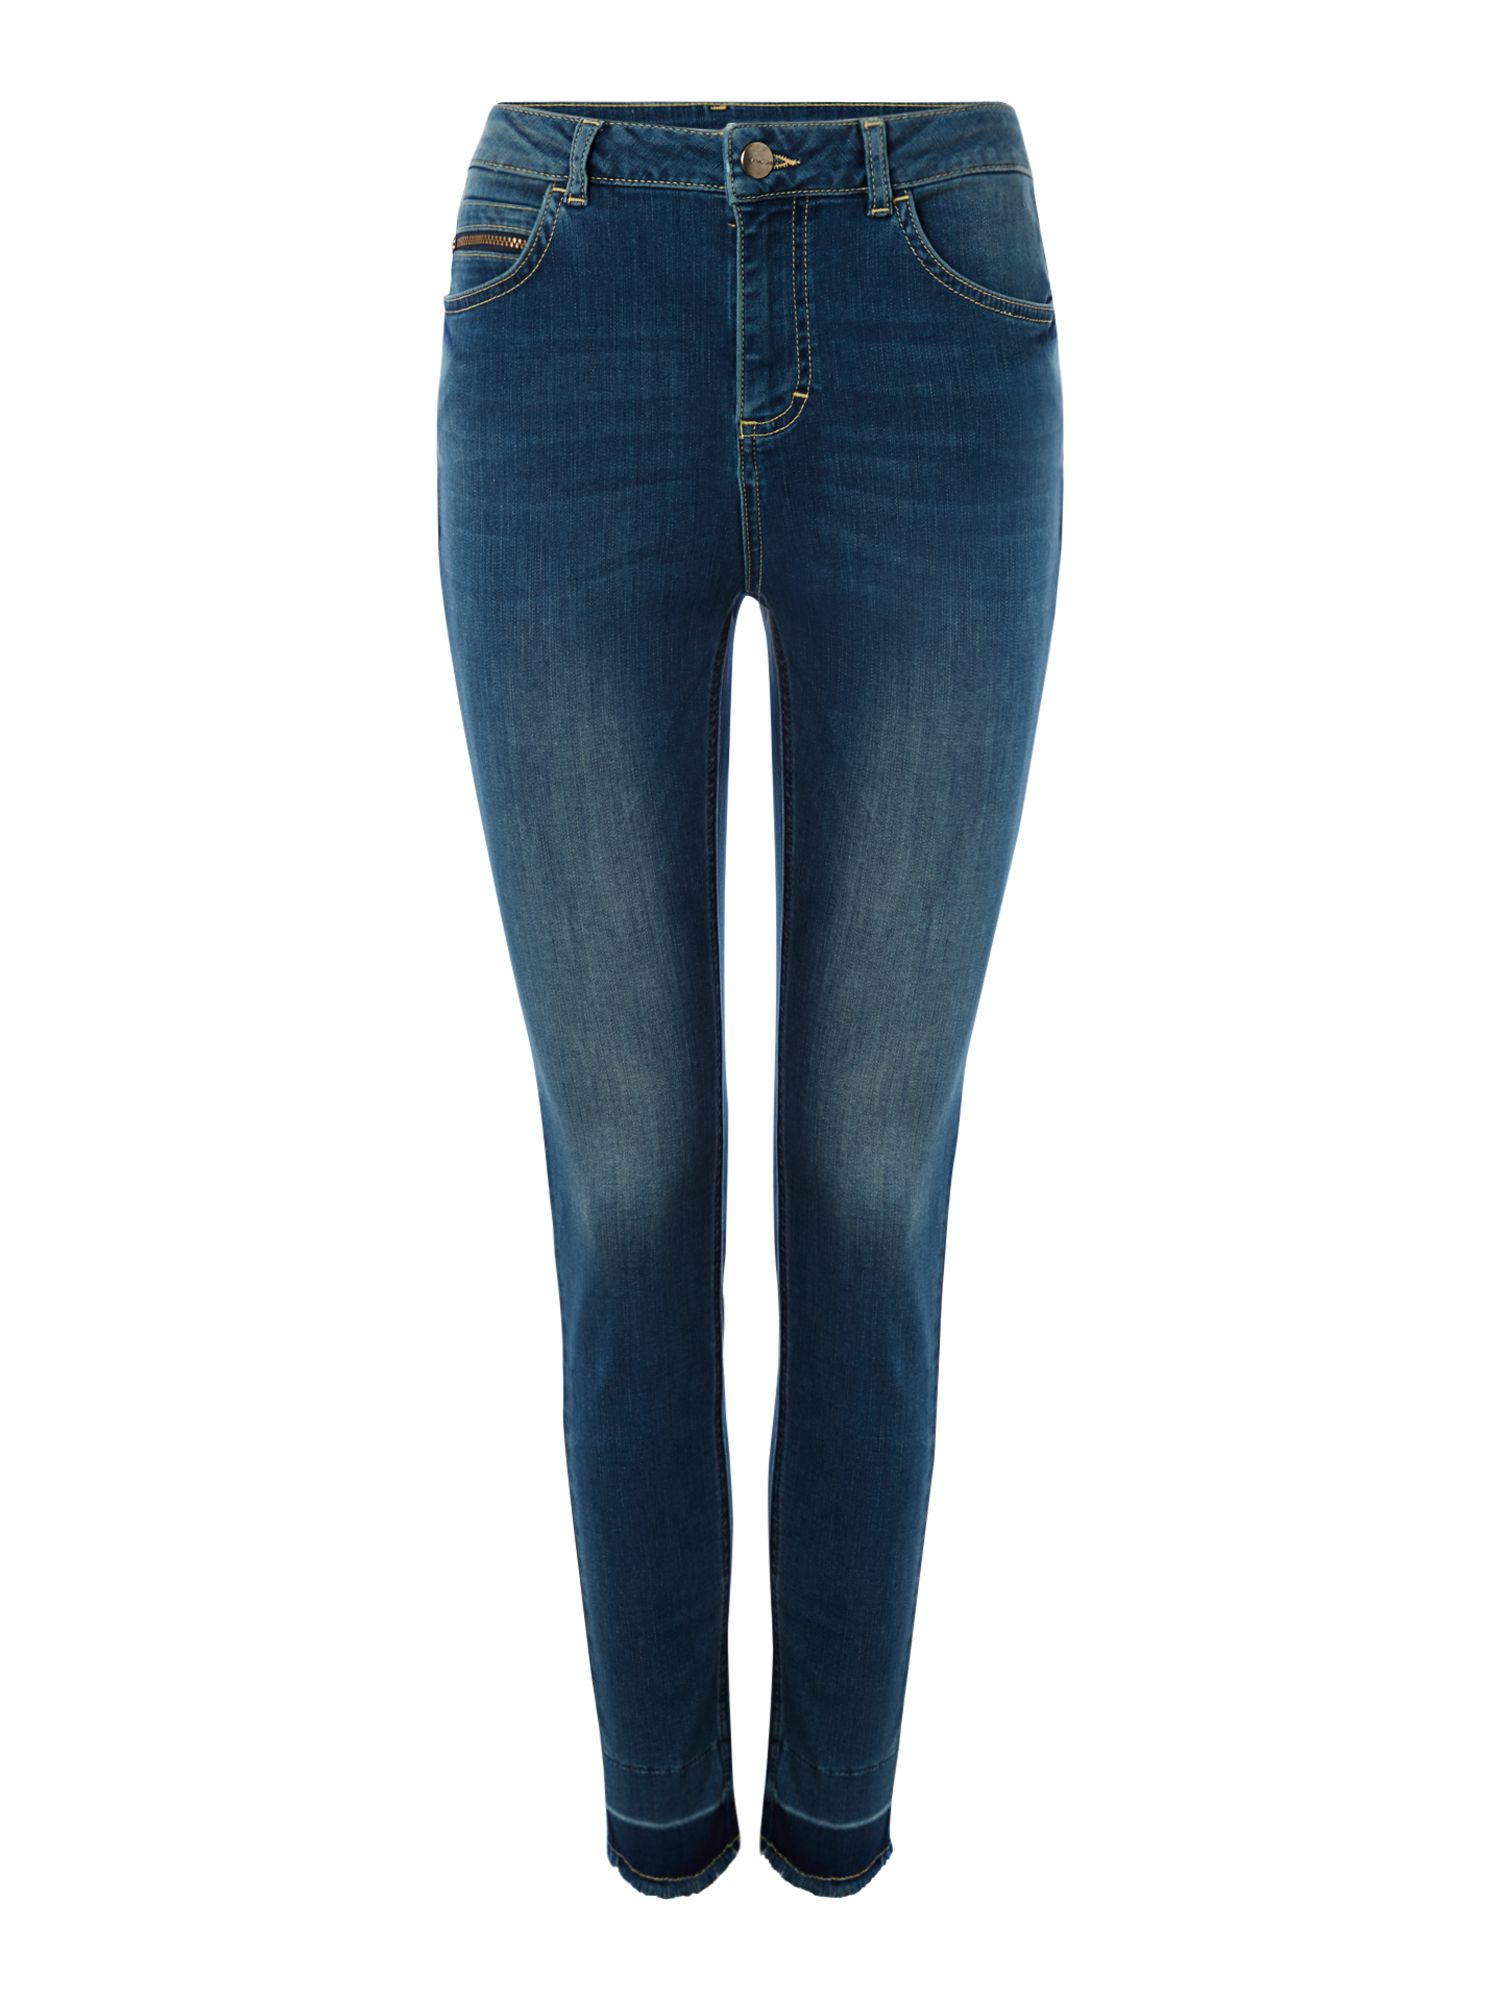 Label Lab Monument undone hem jean, Blue